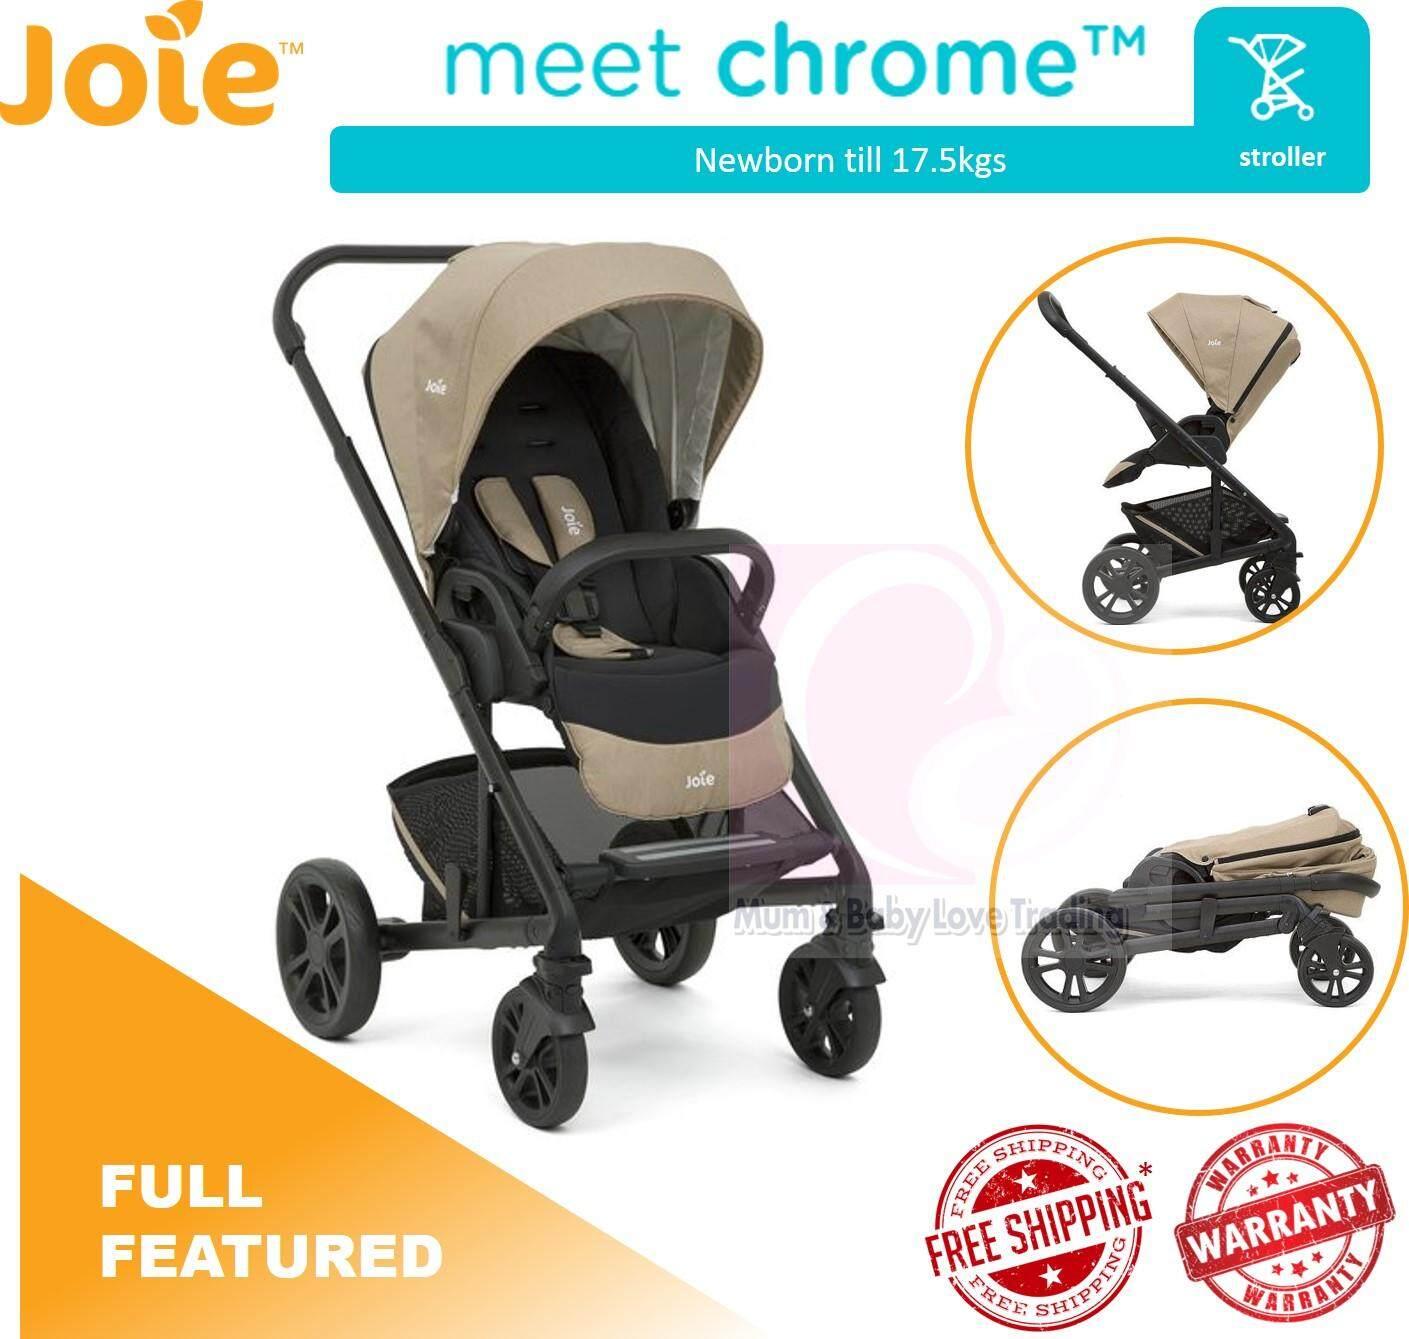 Newborn In Pram Seat Joie Chrome Baby Stroller With Reversible Seat Newborn Till 17 5kg Sandstone Malaysia